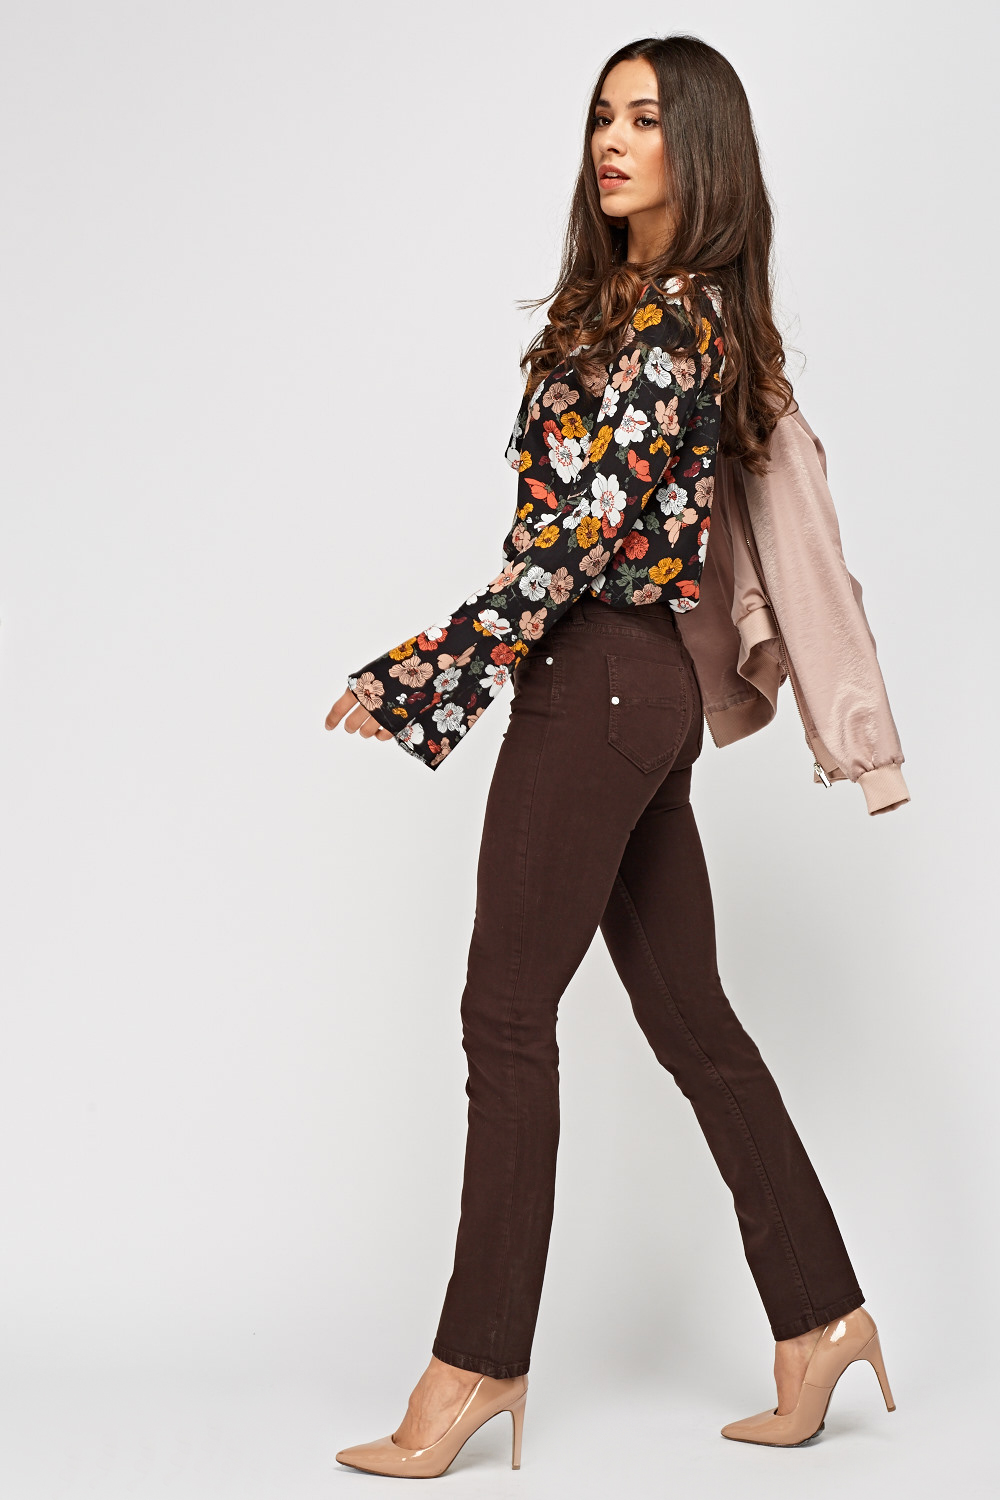 Chocolate Slim Fit Jeans - Just $6